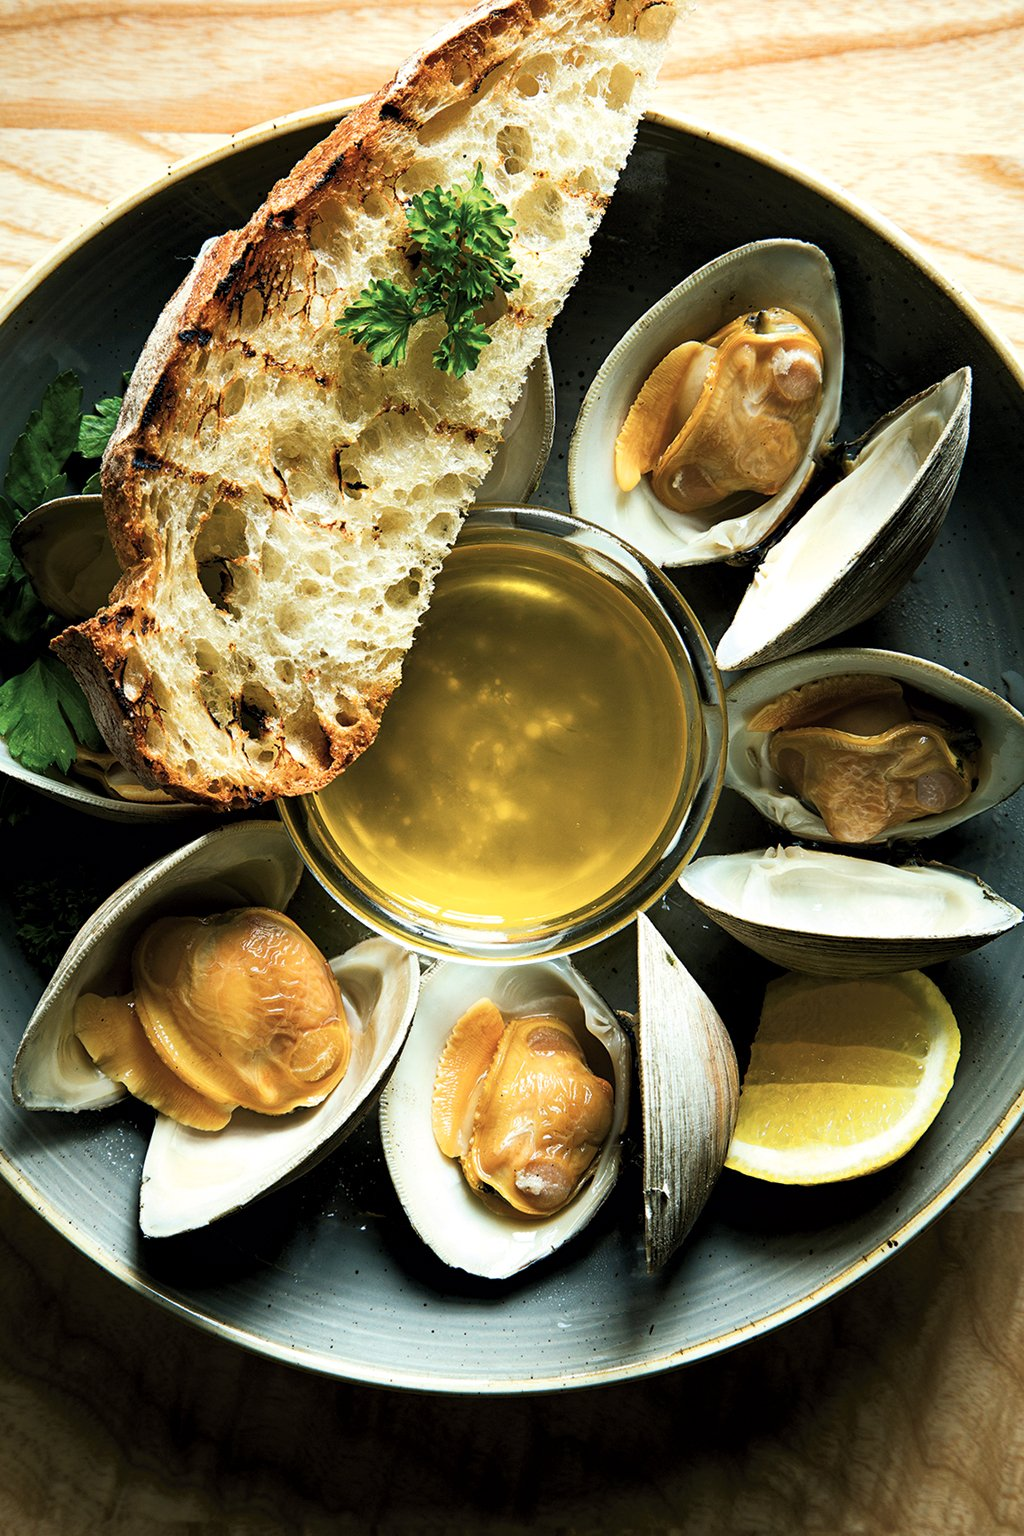 Steamed clams with butter at Ivy City. Photograph by Scott Suchman. (July 2016/Chesapeake Bay)